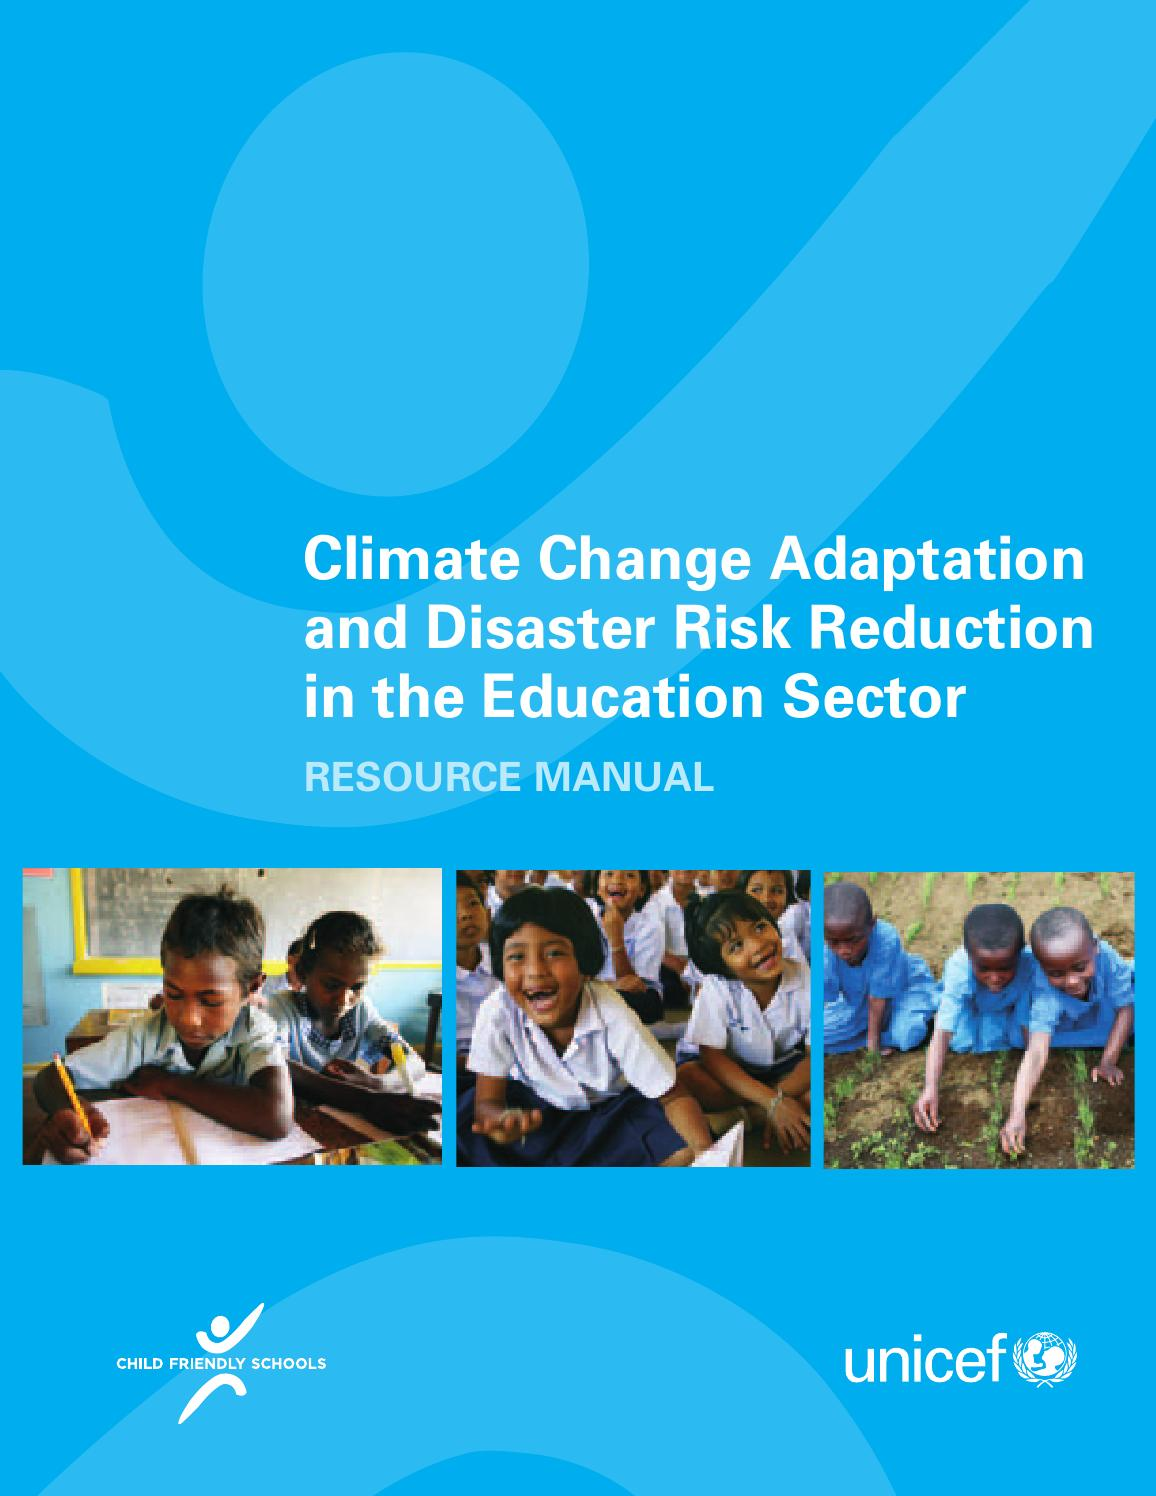 Climate Change Adaptation and Disaster Risk Reduction in the